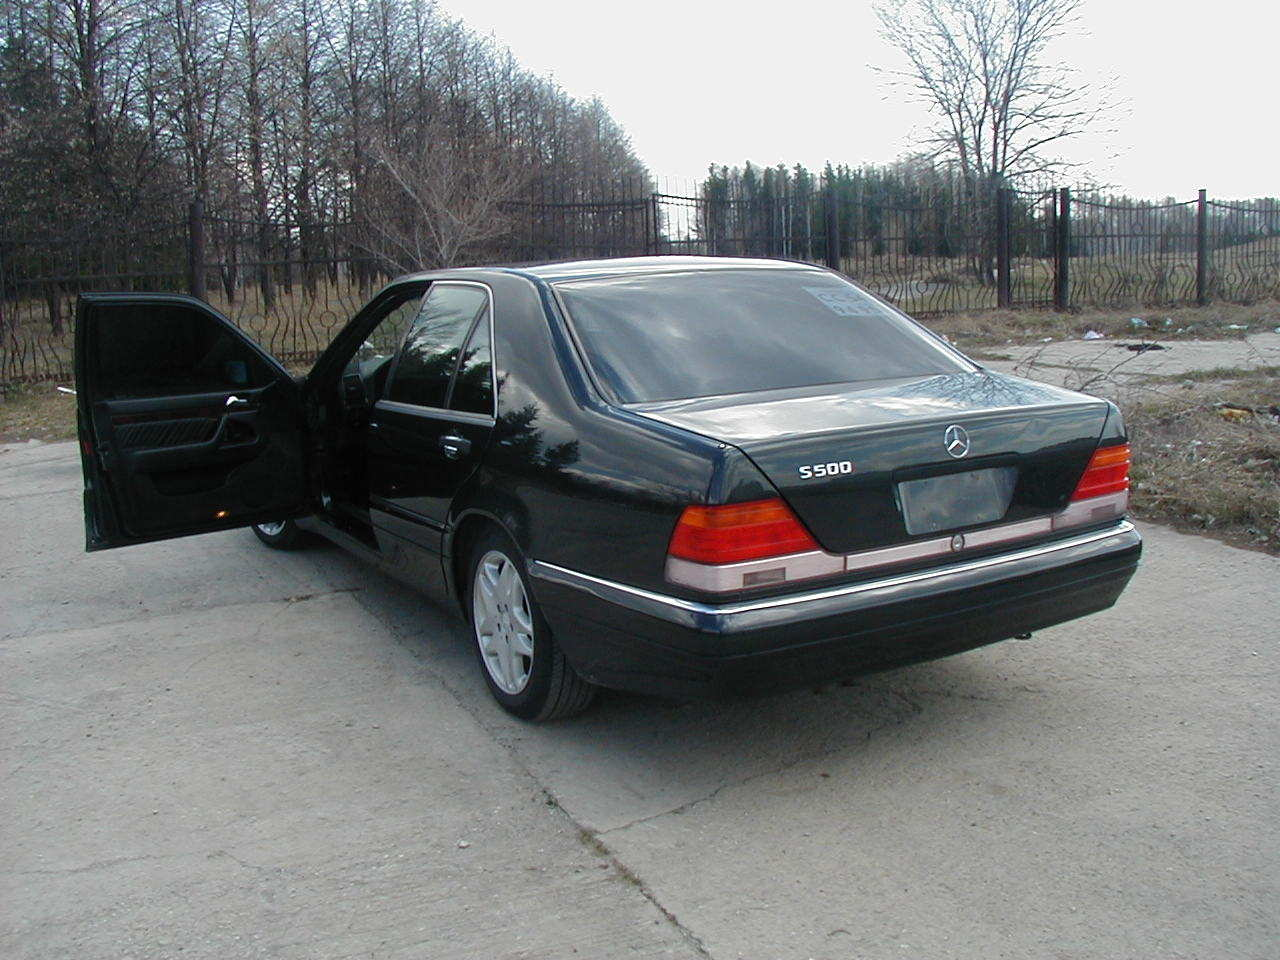 1995 mercedes benz s class pictures gasoline fr for 1995 mercedes benz s class